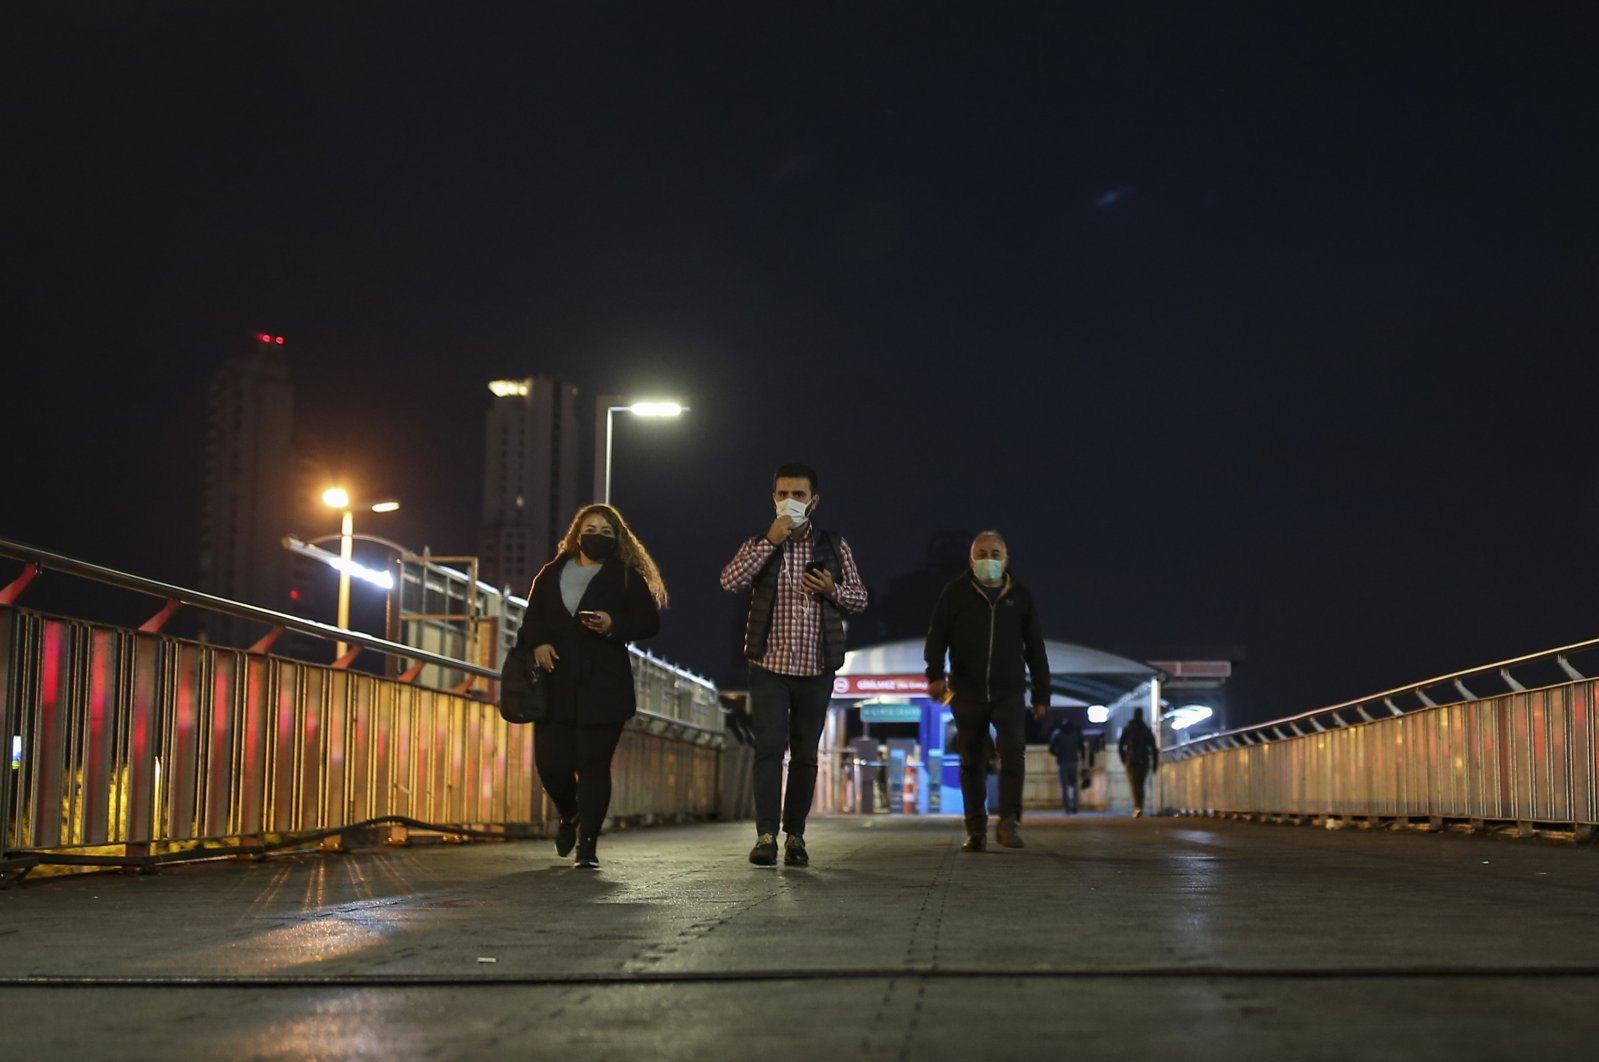 People wearing protective masks walk on an overpass, in Istanbul, Turkey, April 26, 2021. (AP PHOTO)